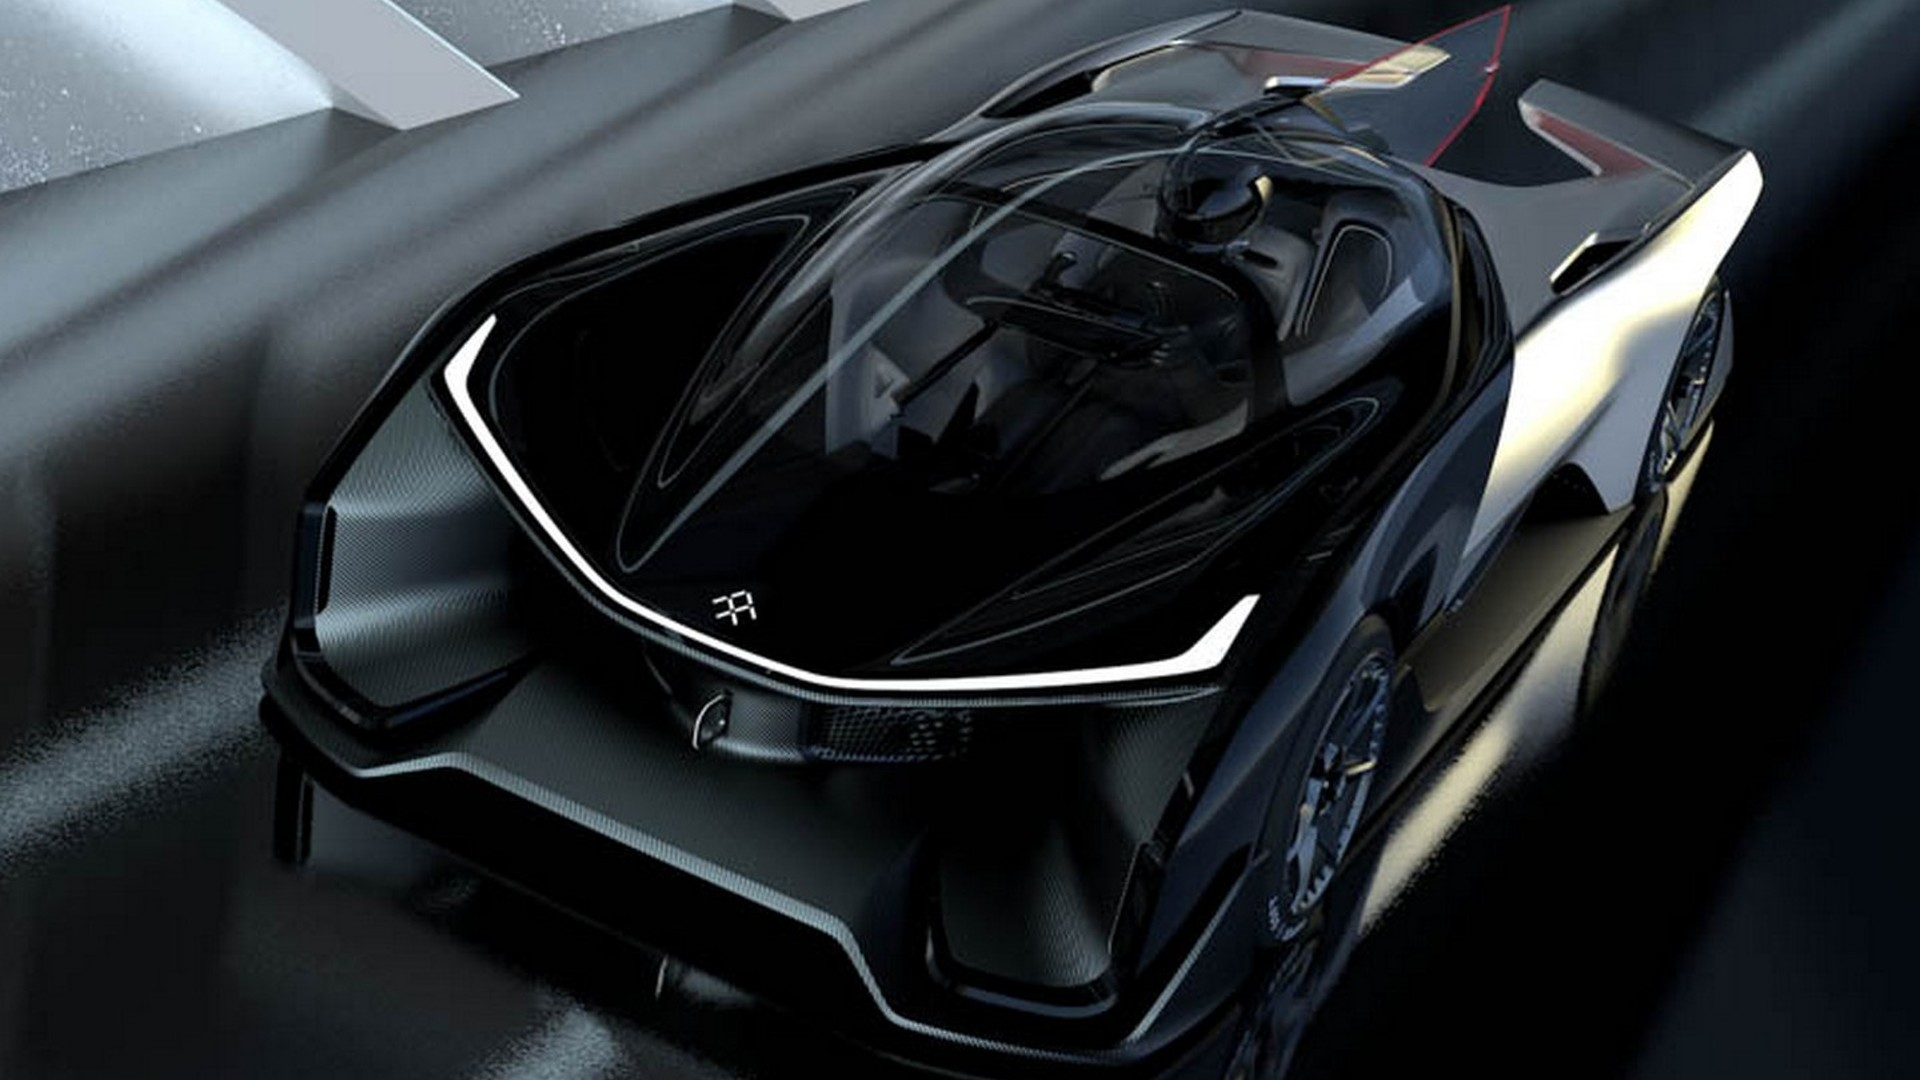 Faraday Future FFZERO1 electric concept has 1,000+ hp [videos]